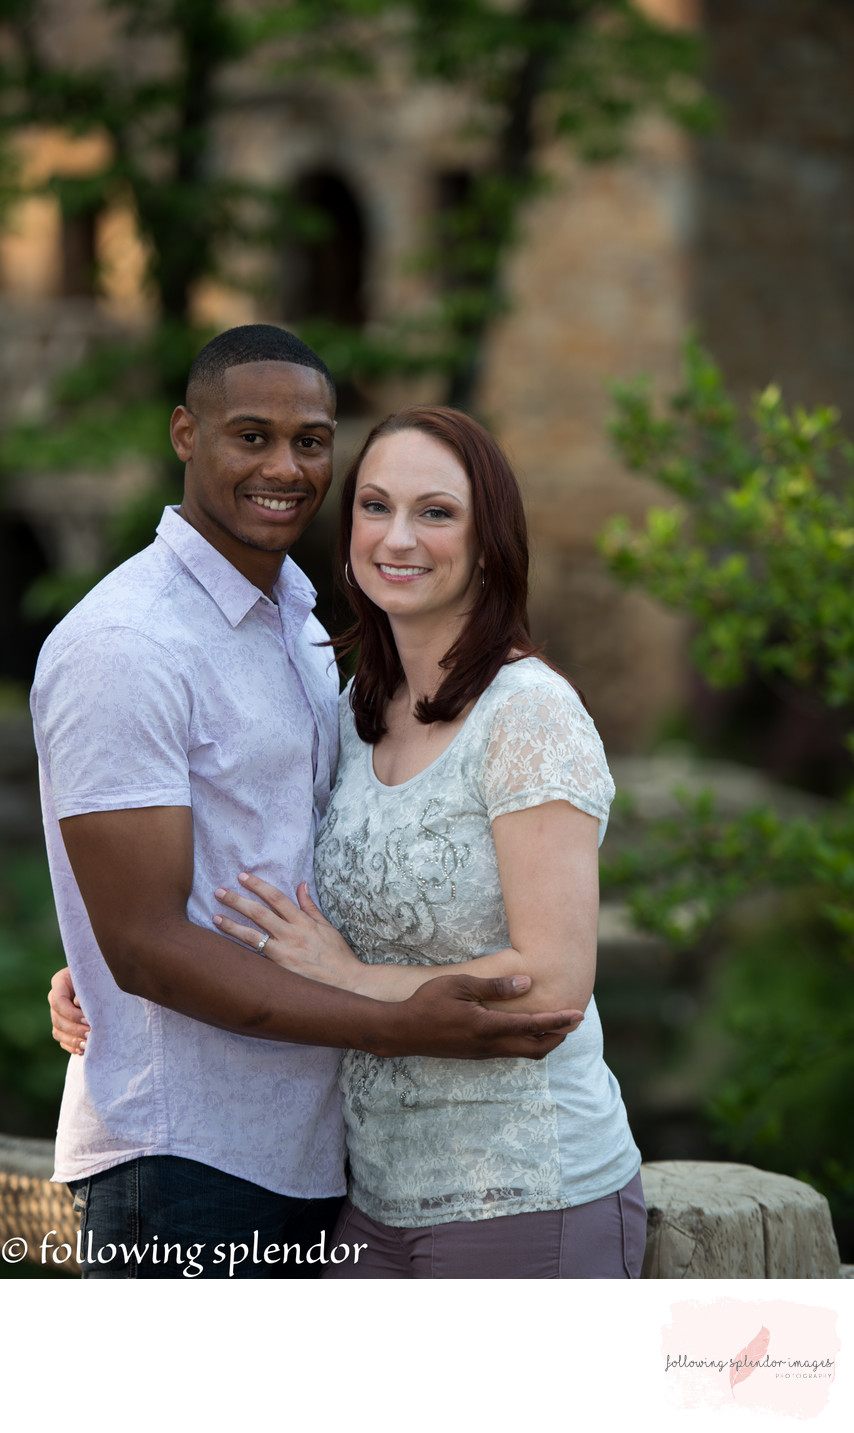 Engagement Photos at the Old Mill in Little Rock, Arkansas